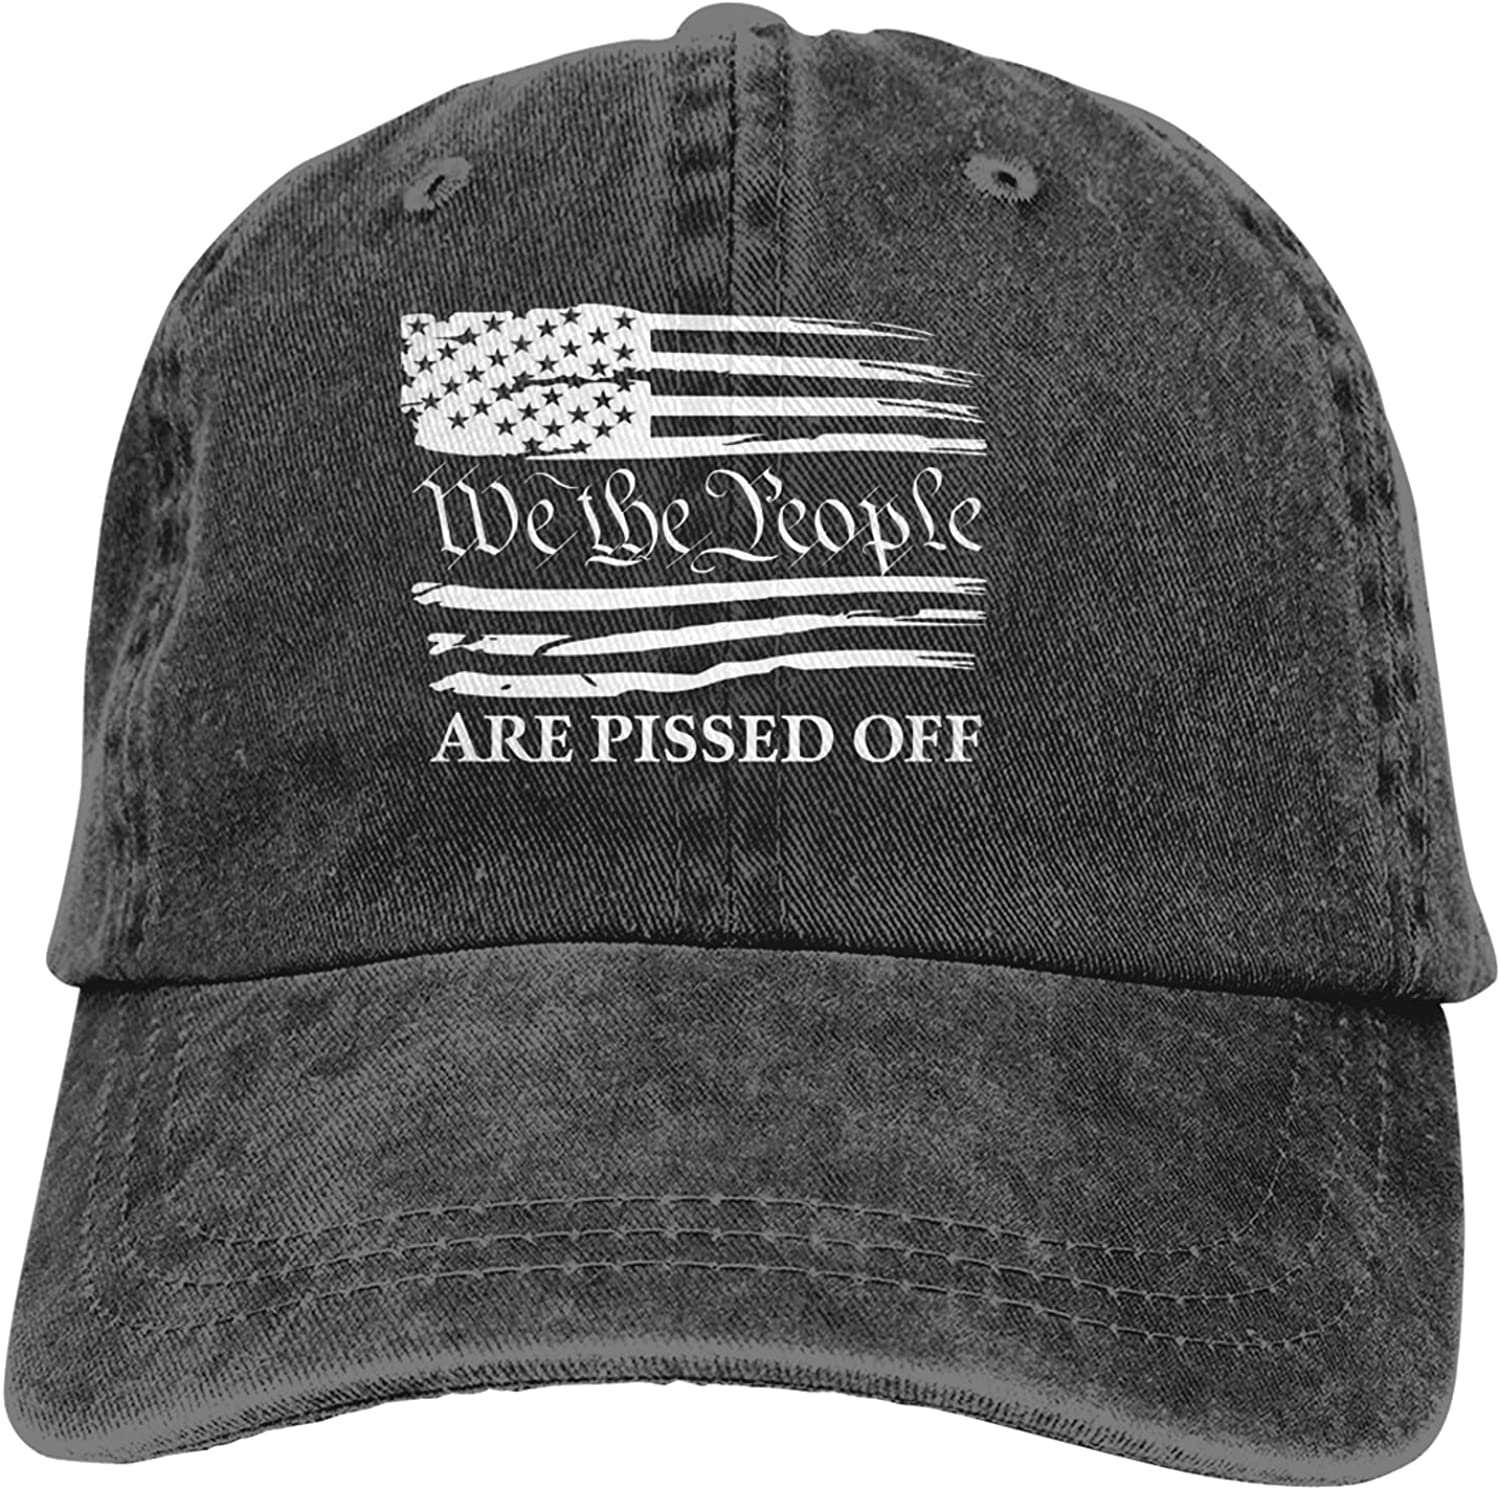 We The People are Pissed Off Cowboy Baseball Cap Men and Women Printing Adjustable Cowboy Retro Sun Anti-Ultraviolet Dad Trucker Hat